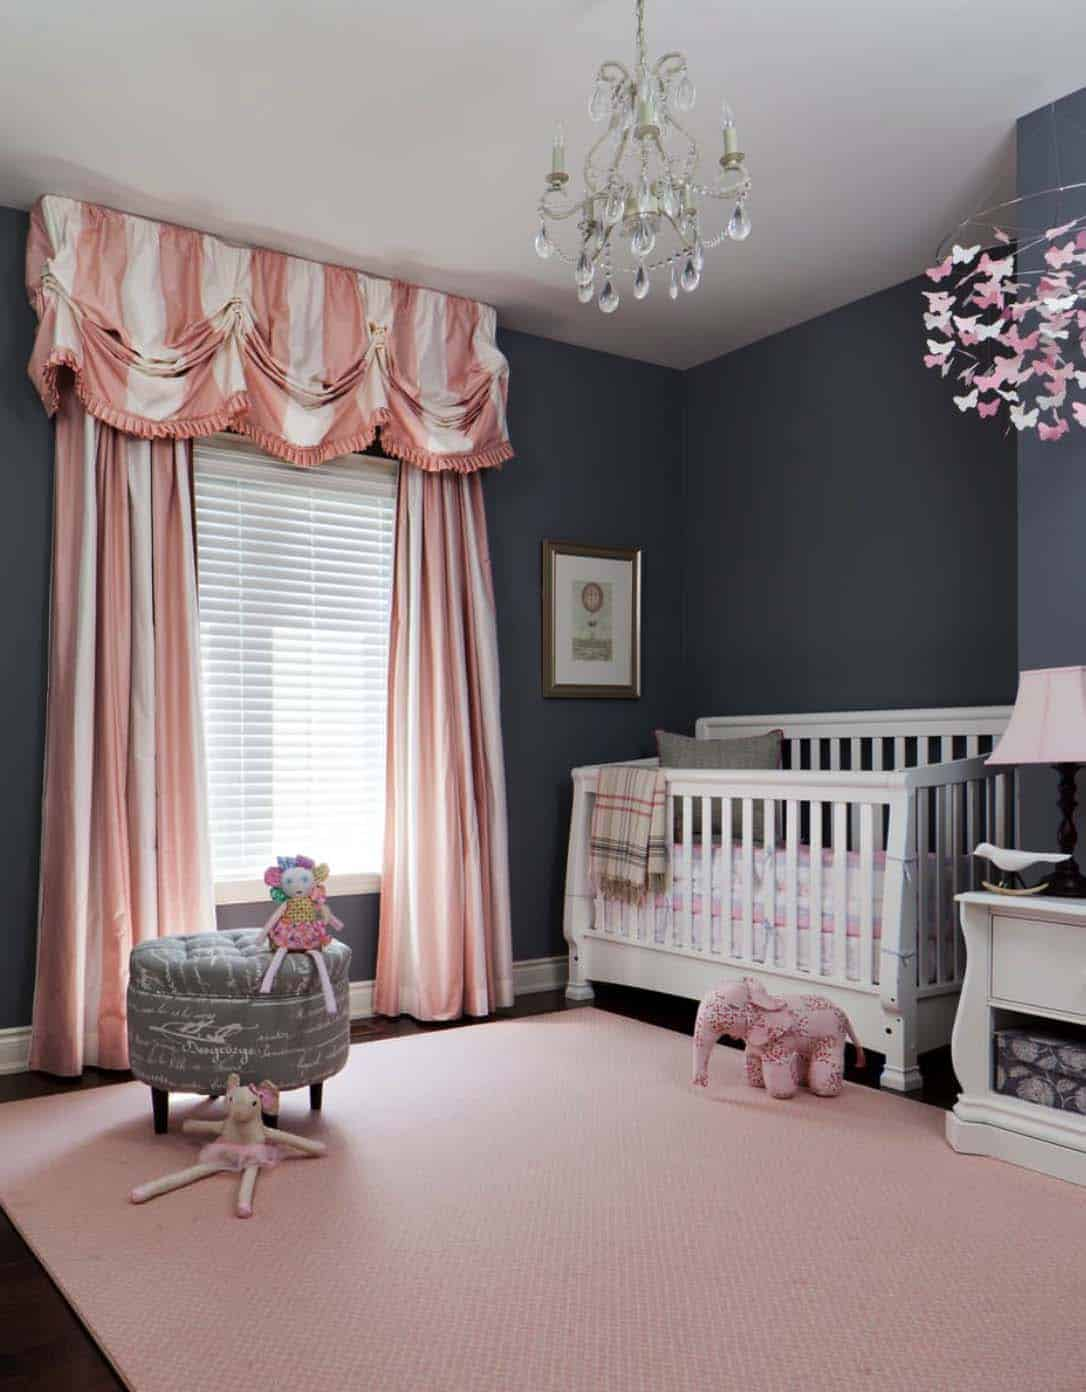 Stylish Nursery Decorating Ideas-16-1 Kindesign